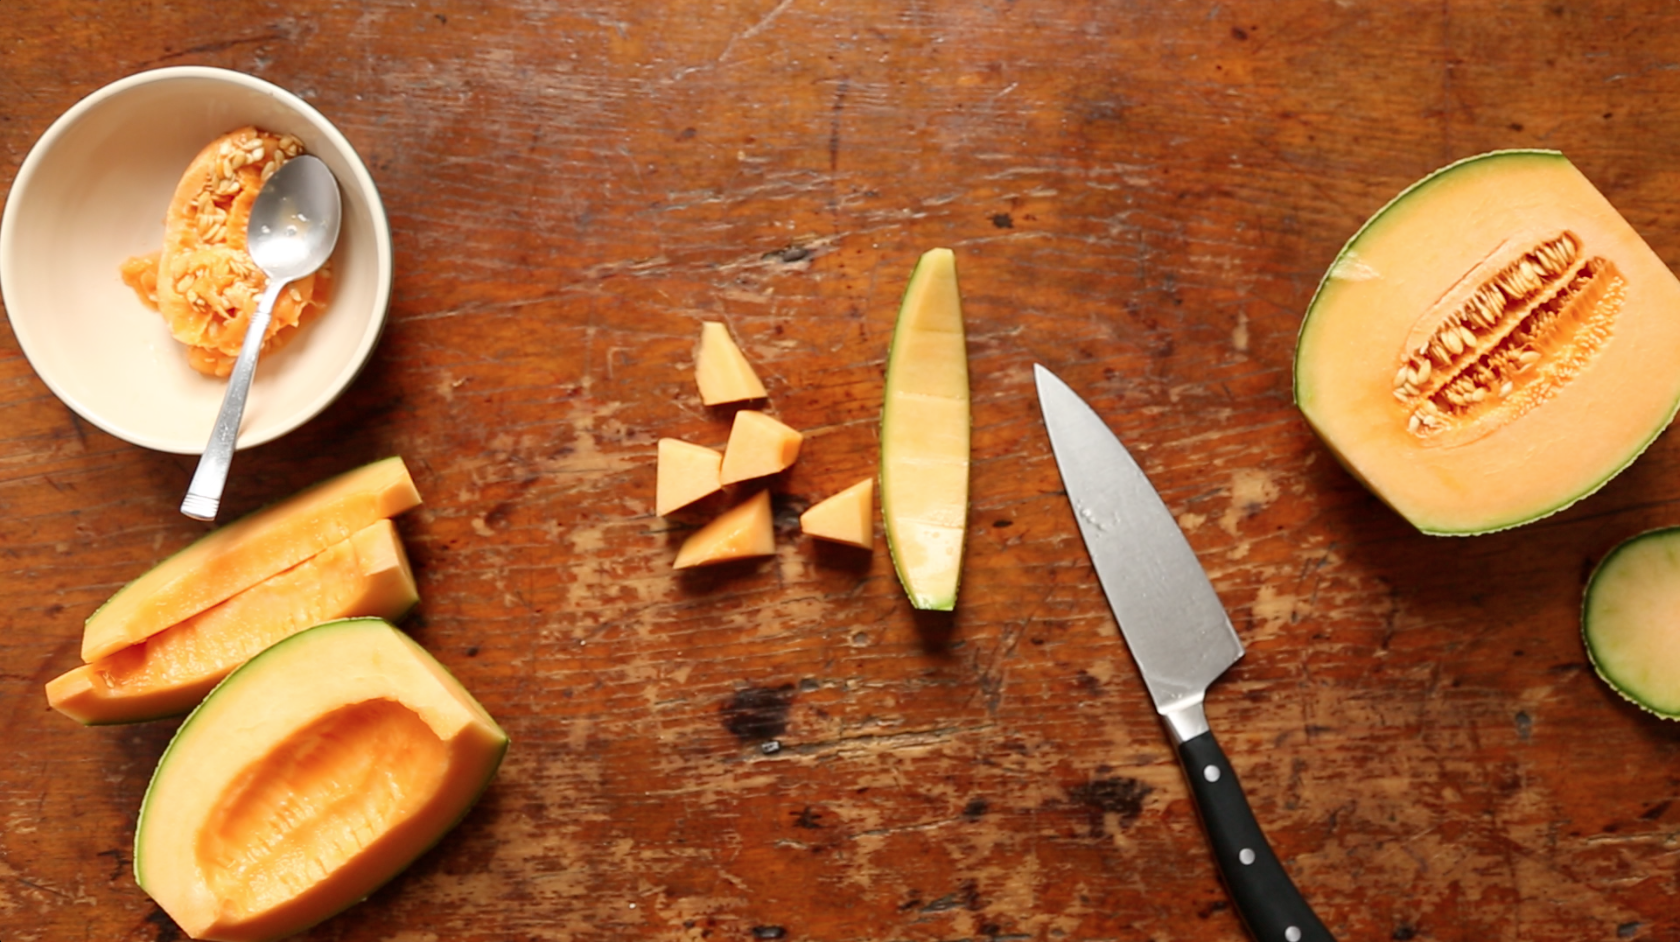 Video: How to Cut a Melon